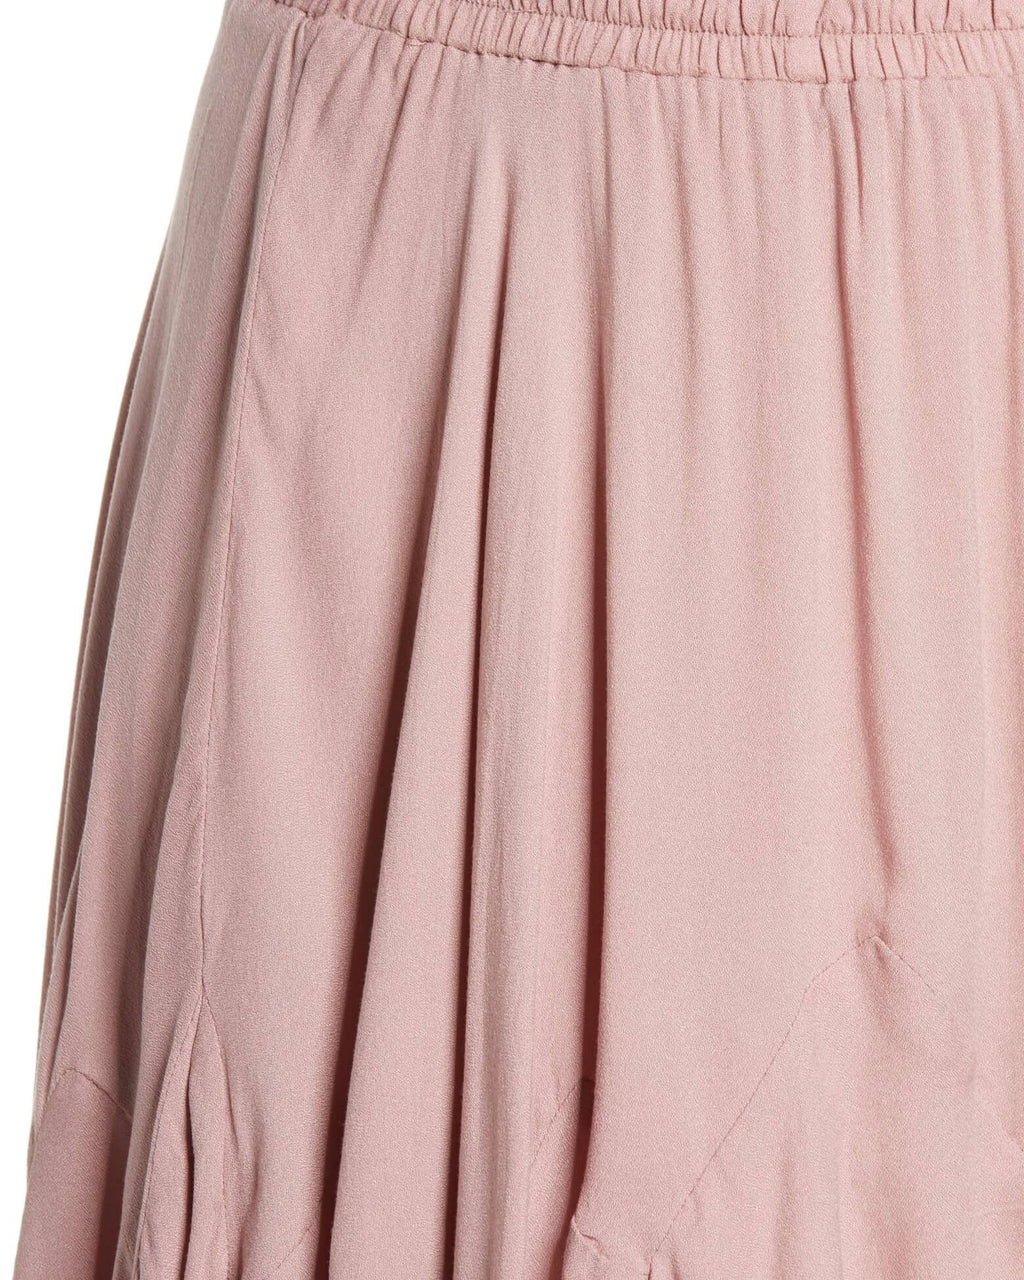 Free People - Easy Does It Half Slip Pull-On Skirt - Pink